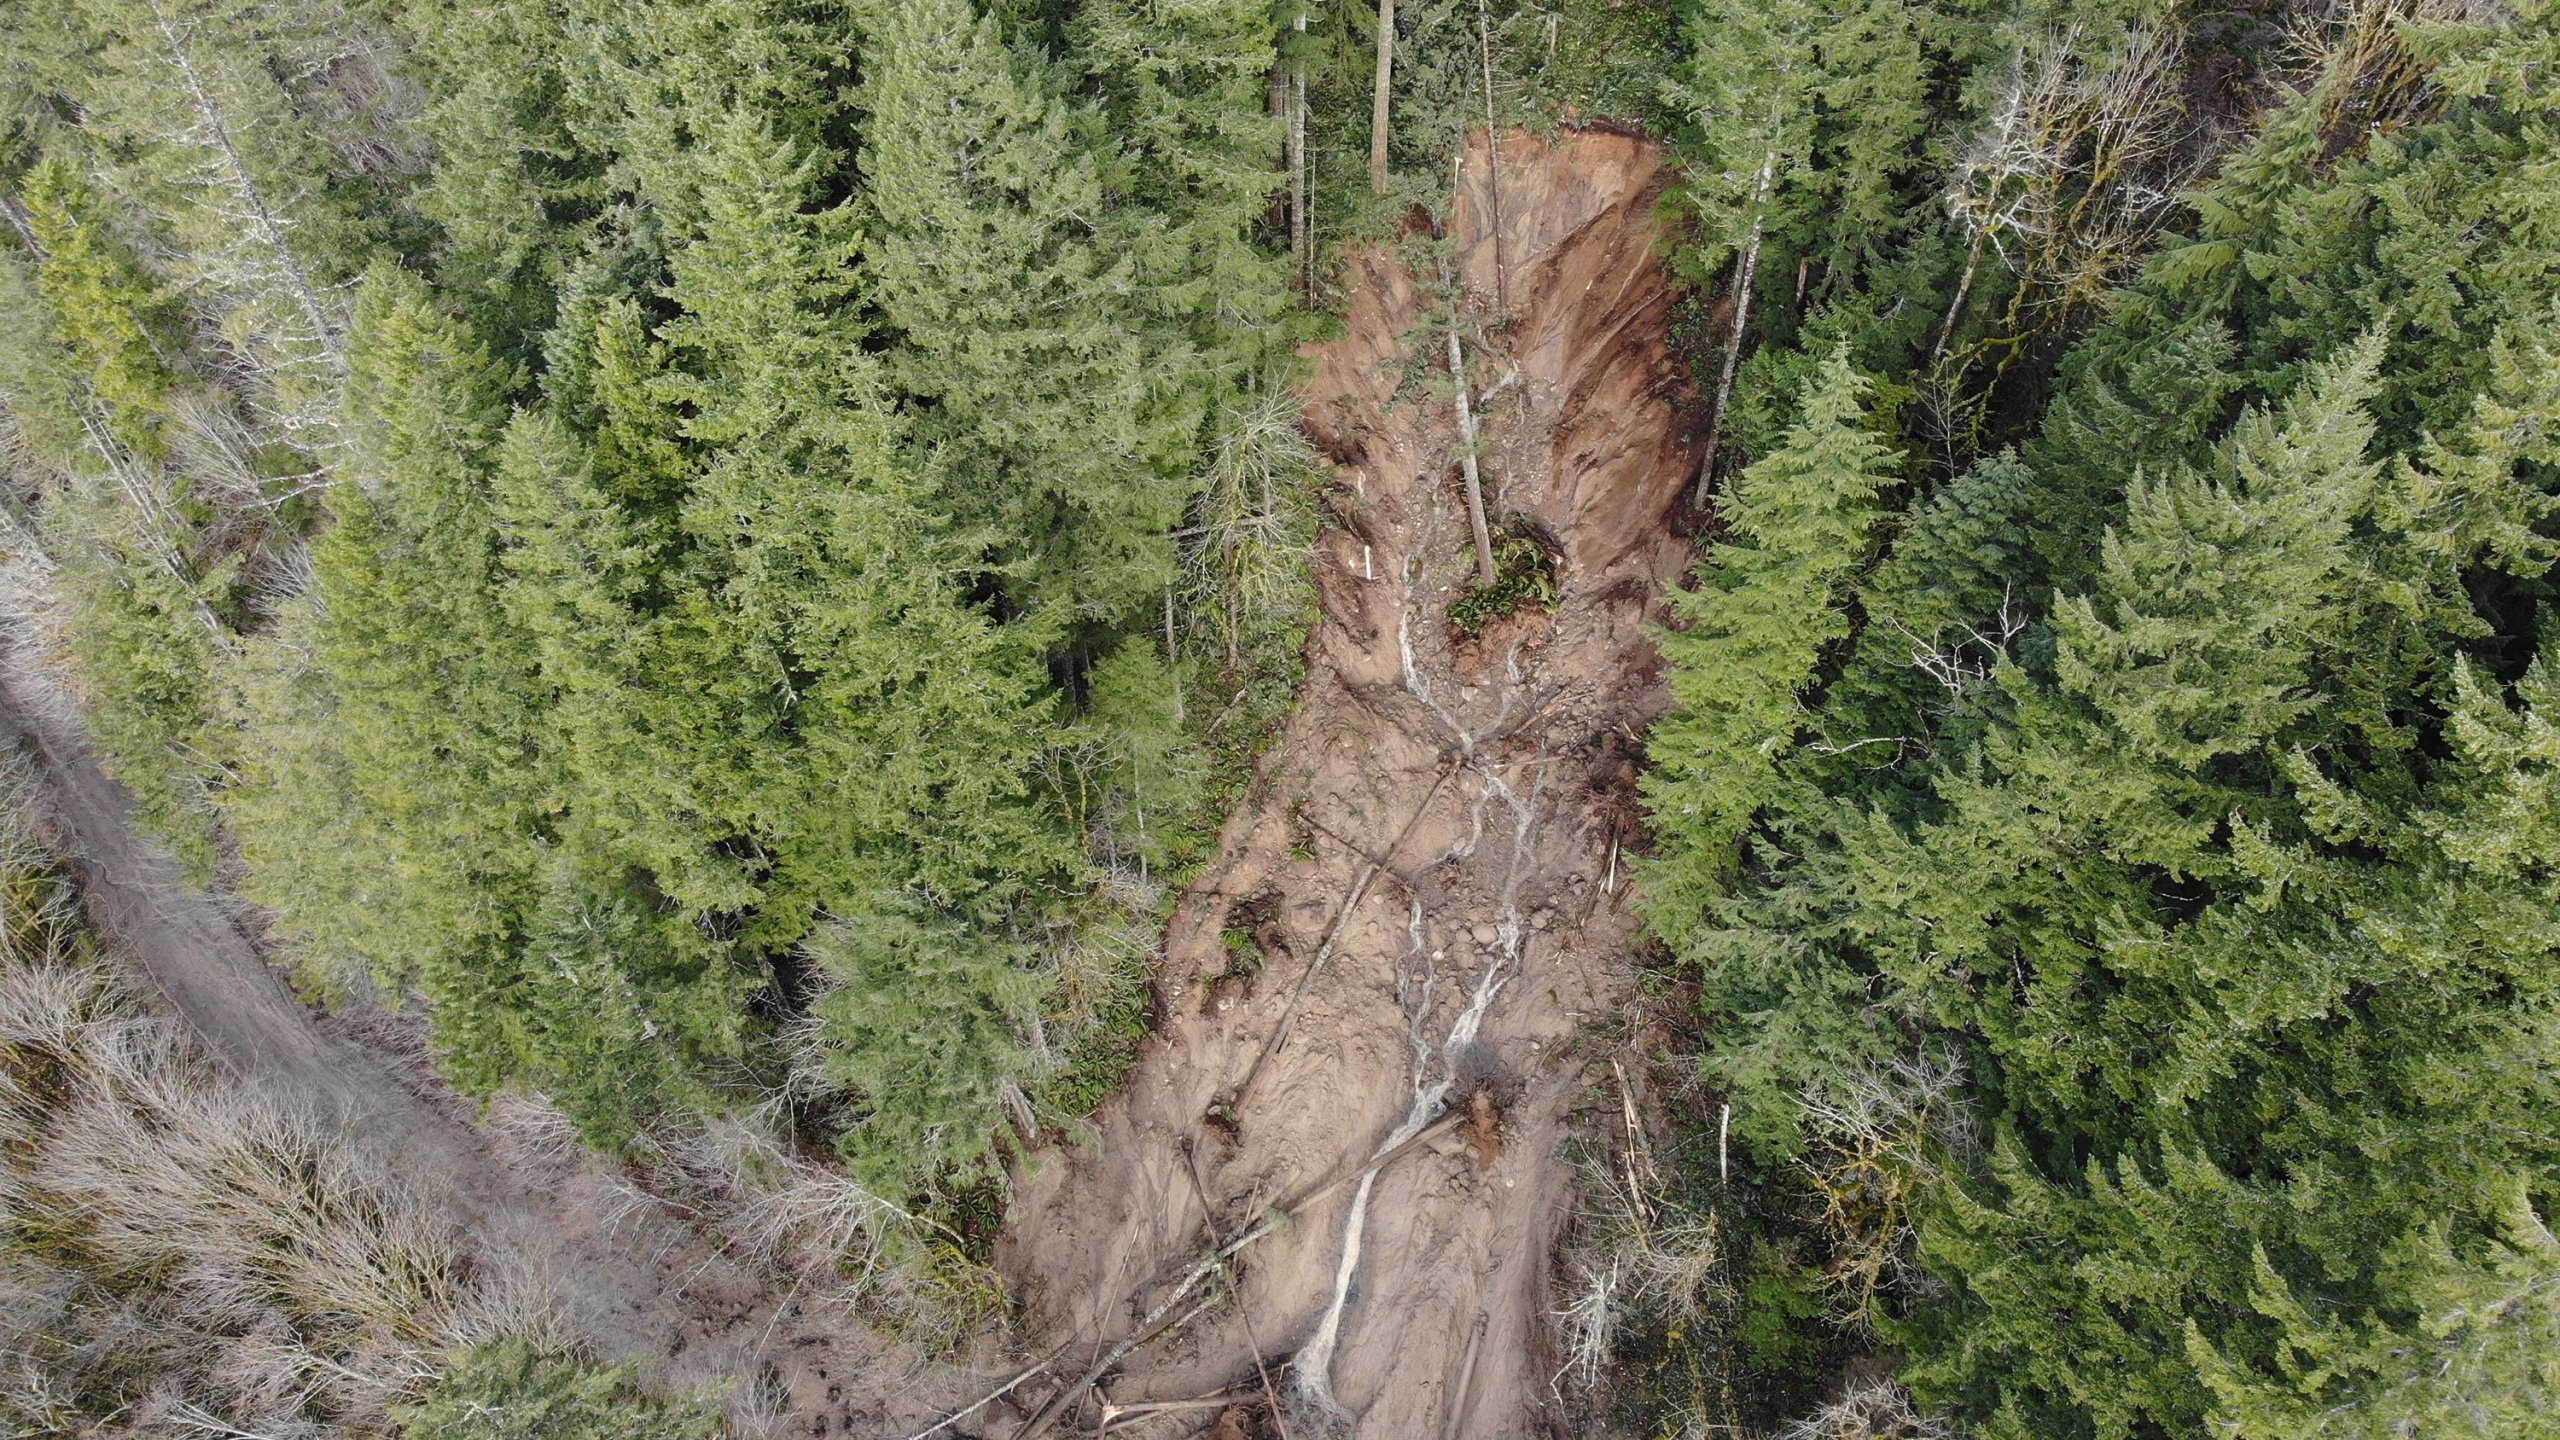 An aerial view of the debris blocking access to the park. (Credit: Washington State Department of Transportation)